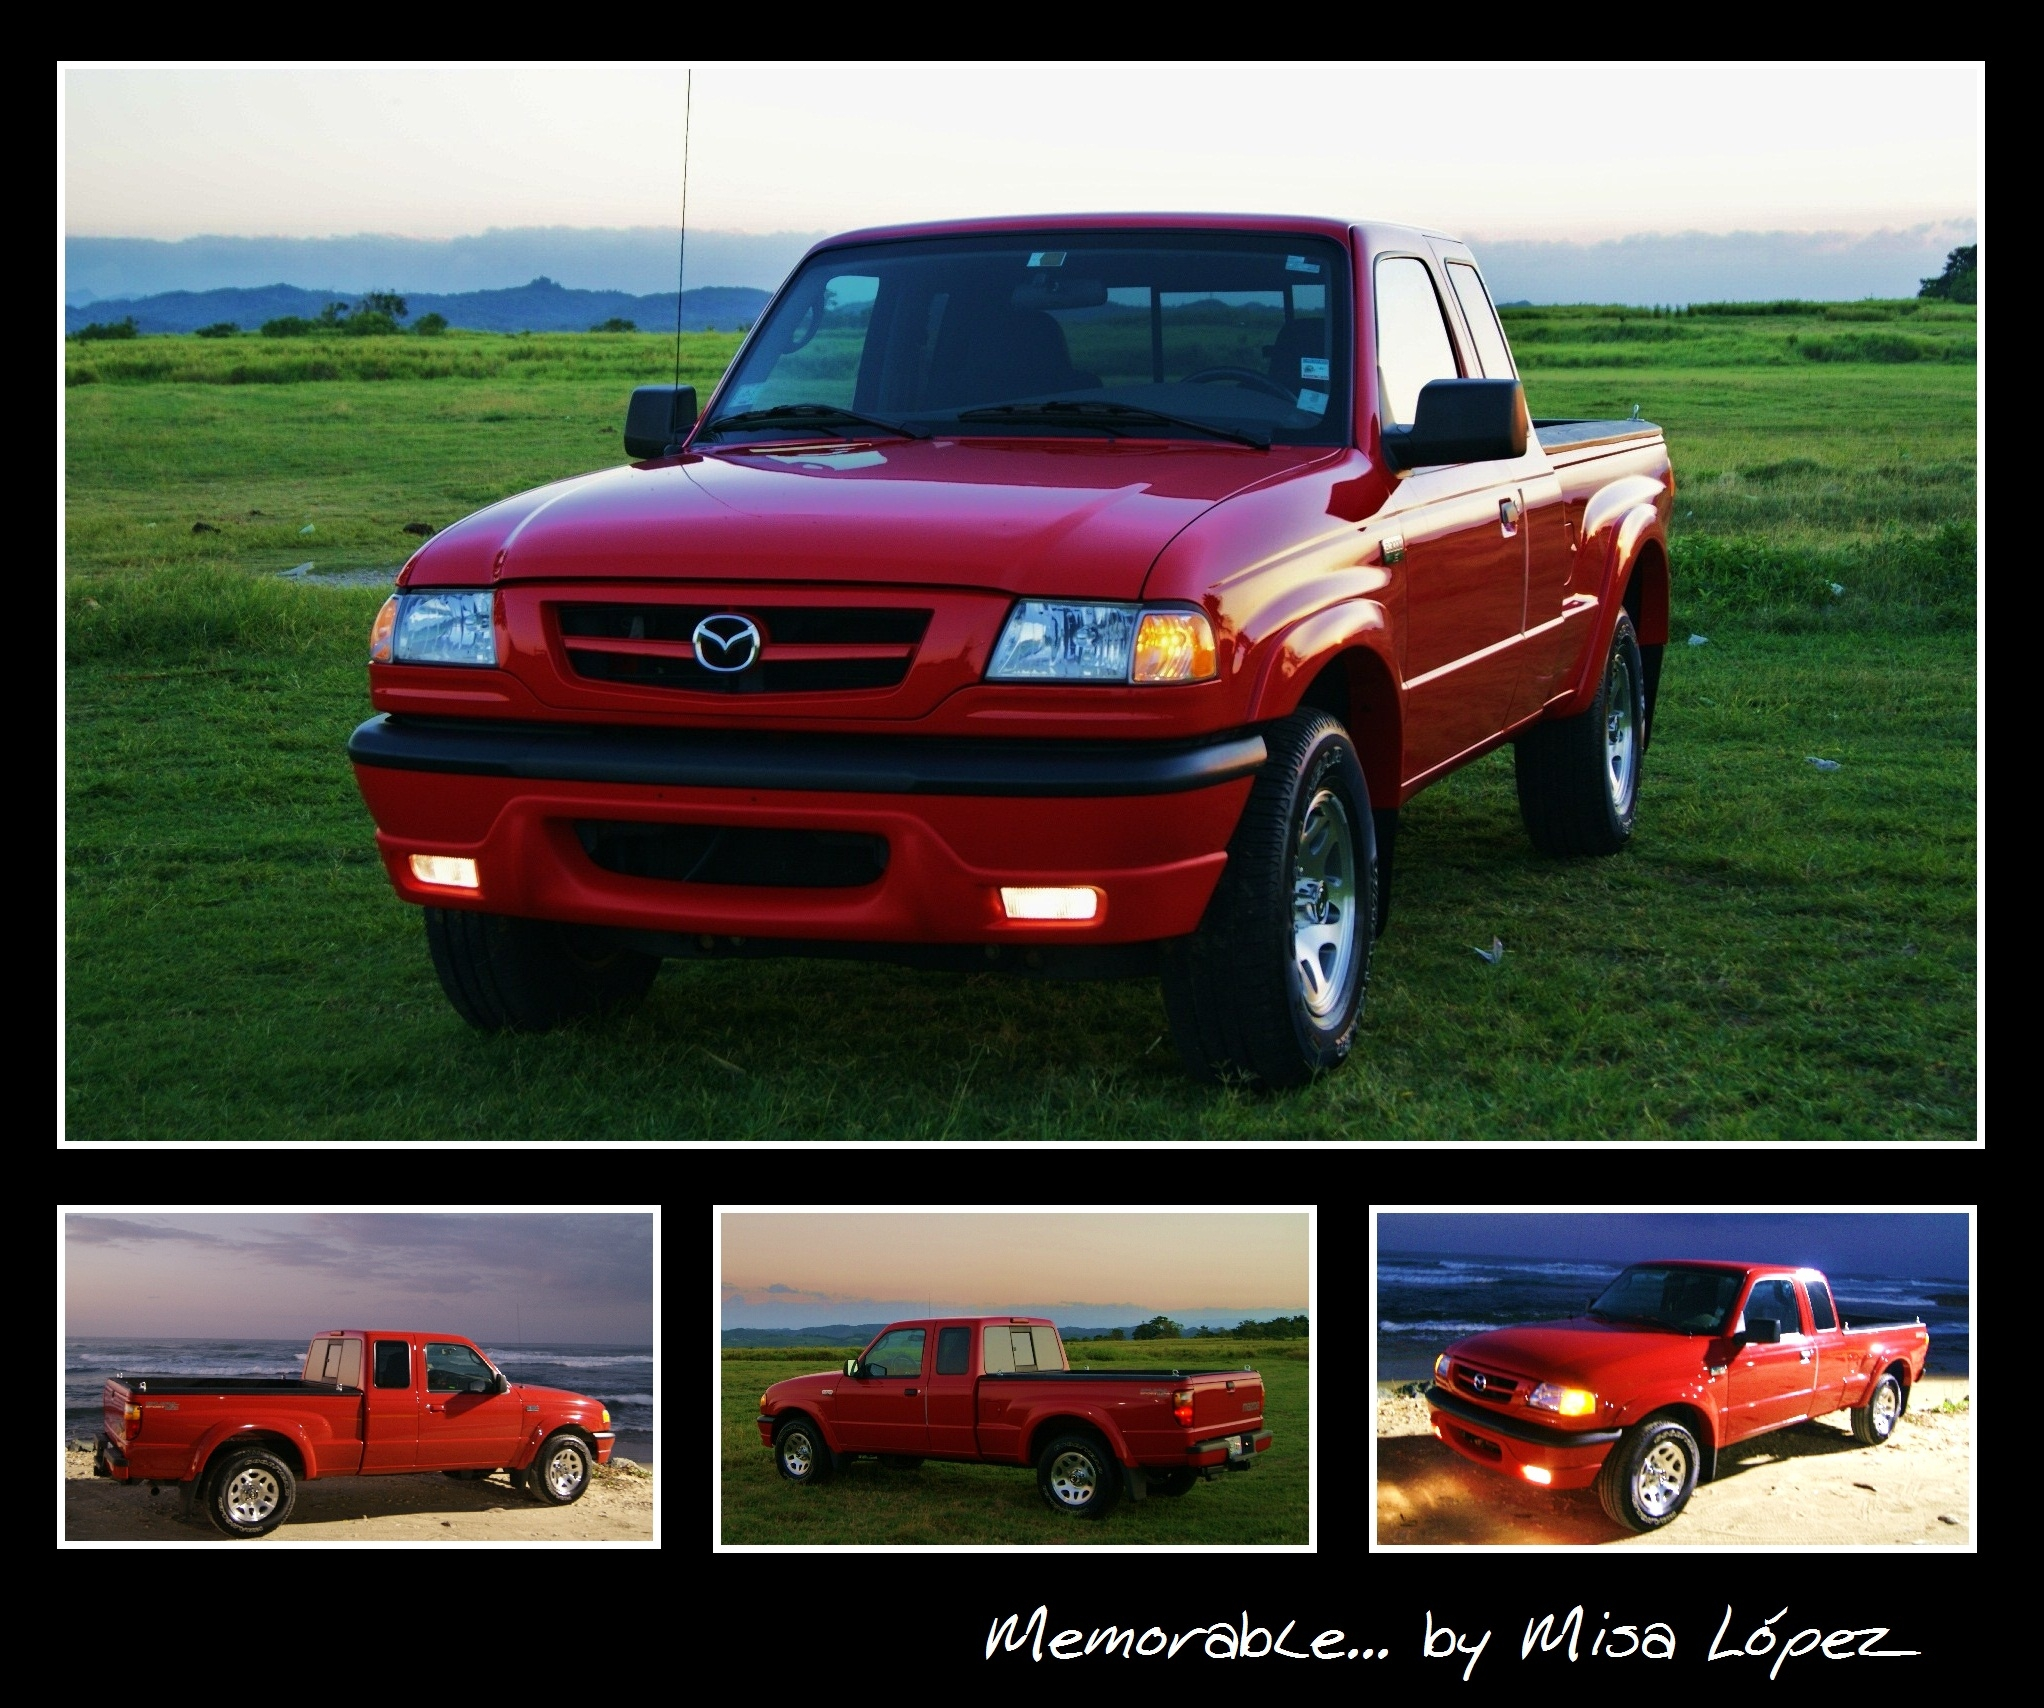 2000 Mazda B Series Cab Plus Exterior: Misael_PR 2008 Mazda B-Series Cab Plus Specs, Photos